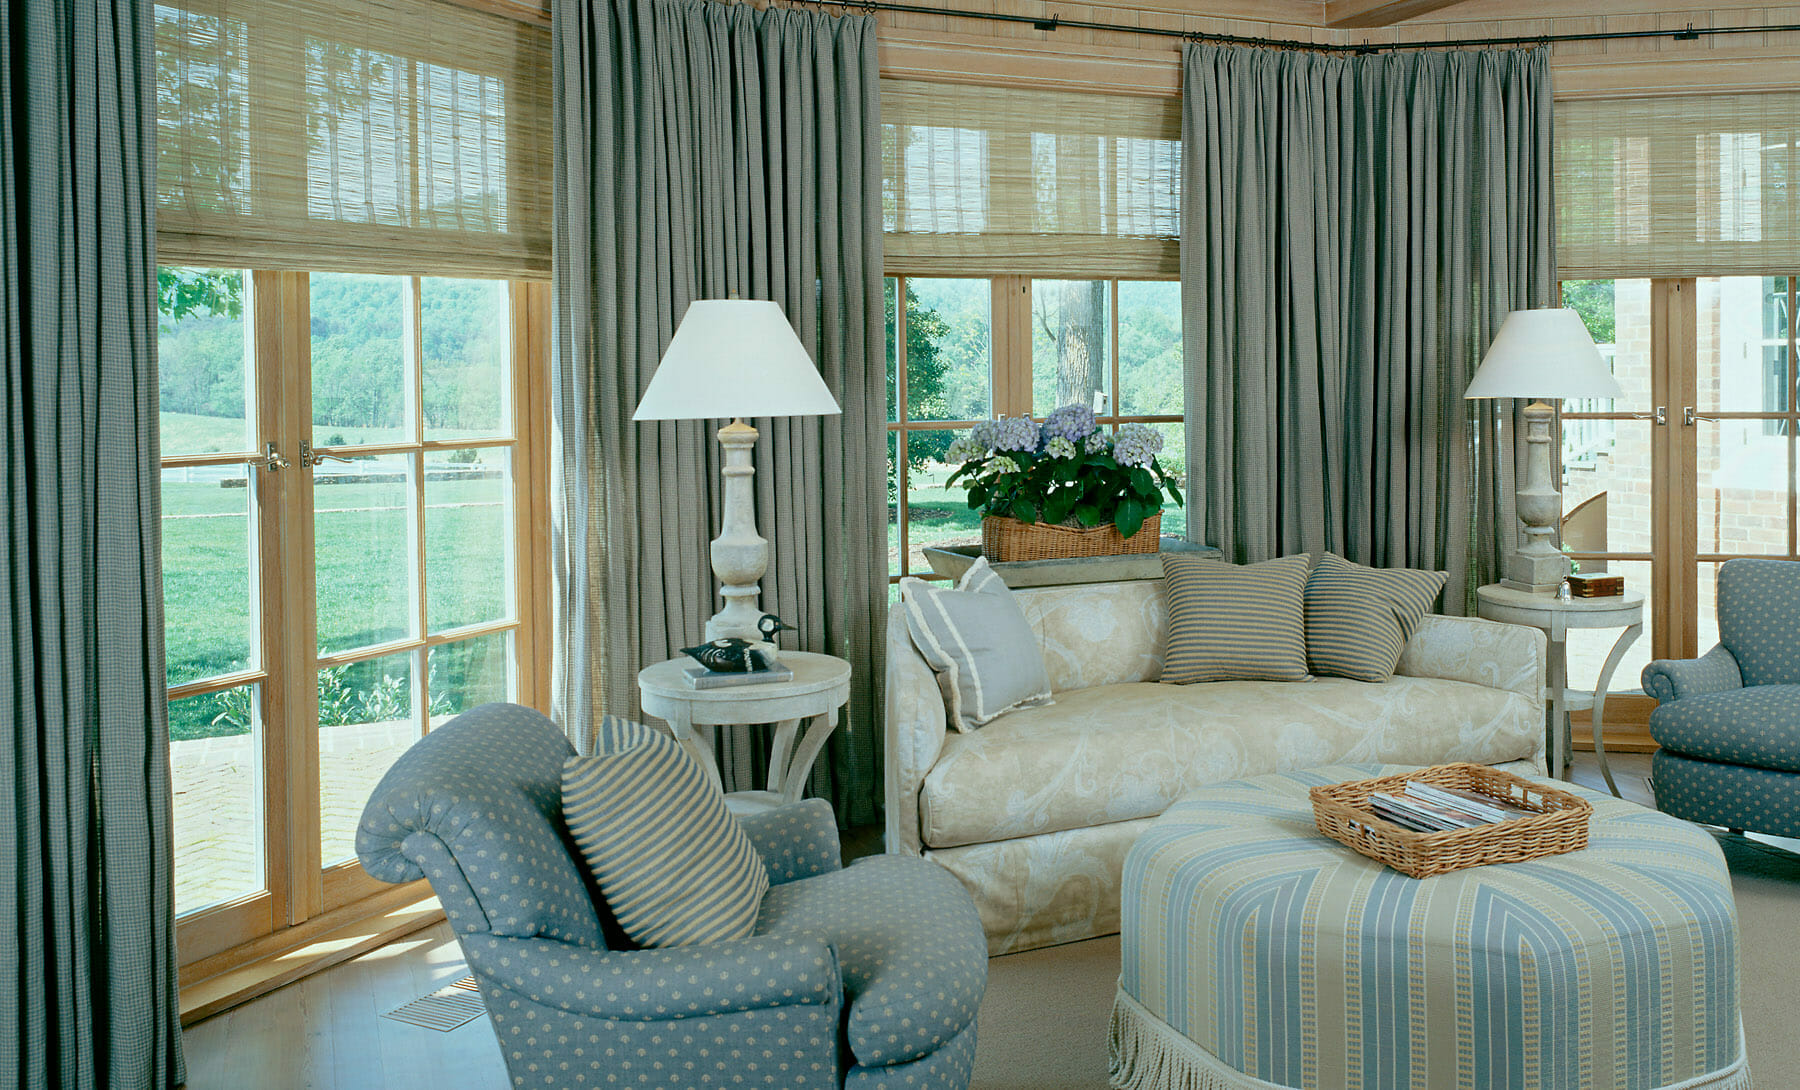 GME Builder specializes in high-end construction and remodeling for estates and historic homes.